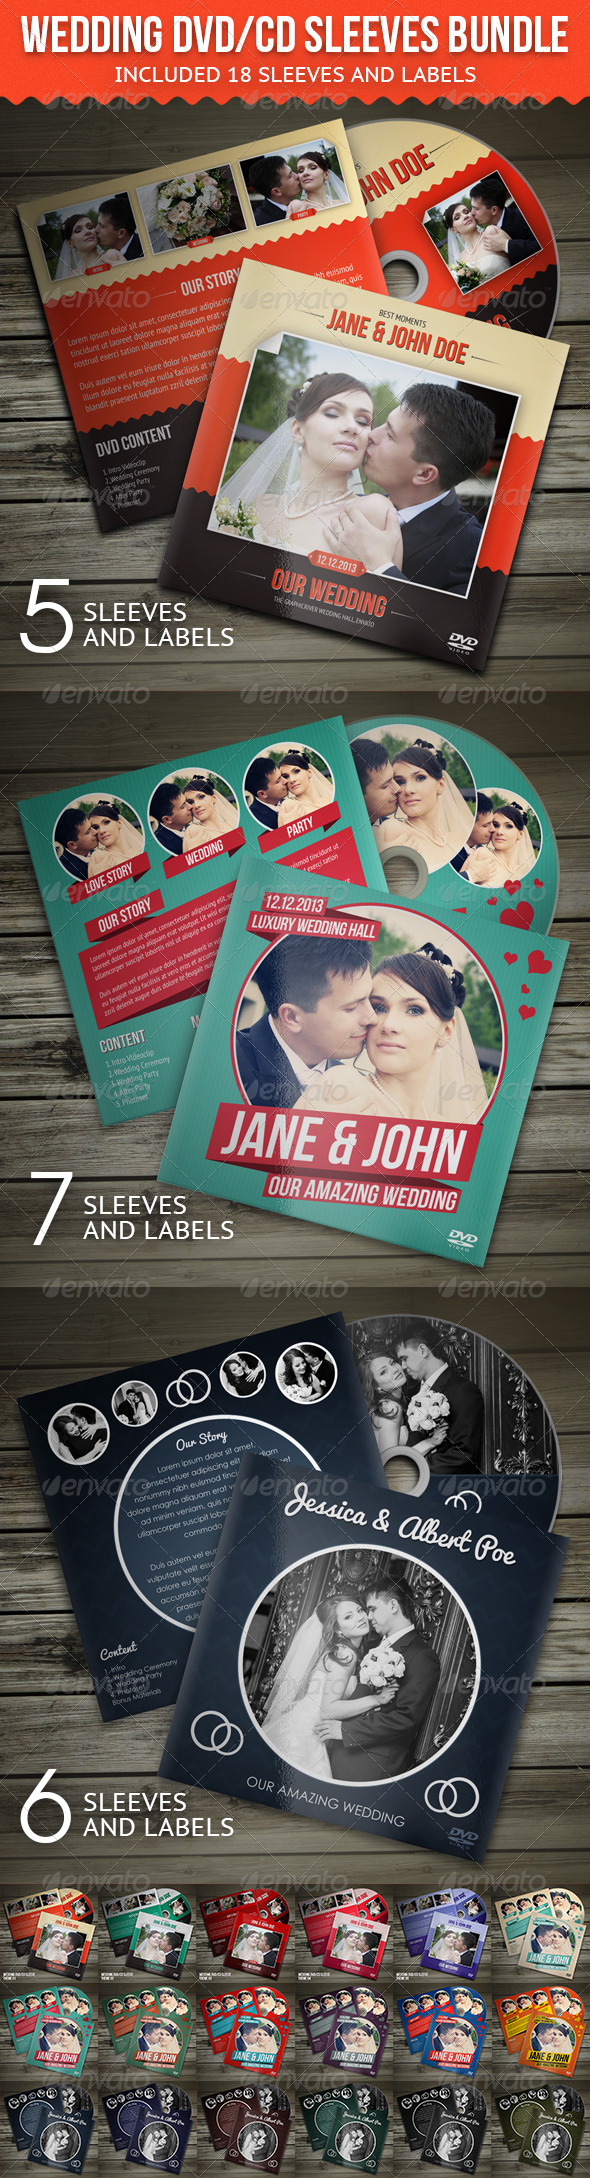 GraphicRiver Wedding DVD CD Sleeves Bundle 6017854